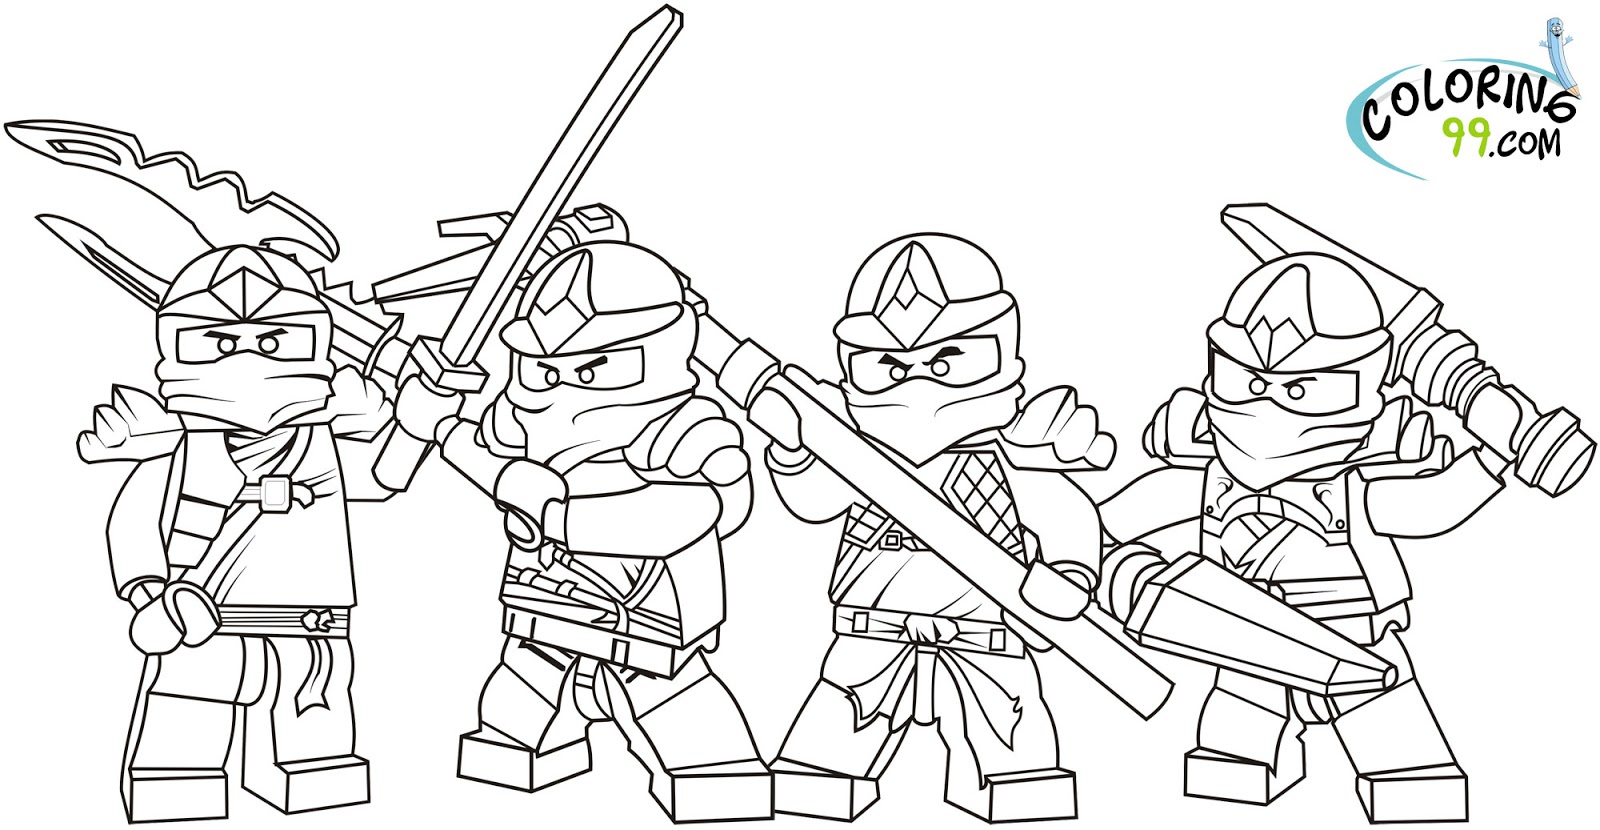 Ninjago Coloring Pages http://printablepicture.blogspot.com/2013/03/lego-ninjago-coloring-pages.html